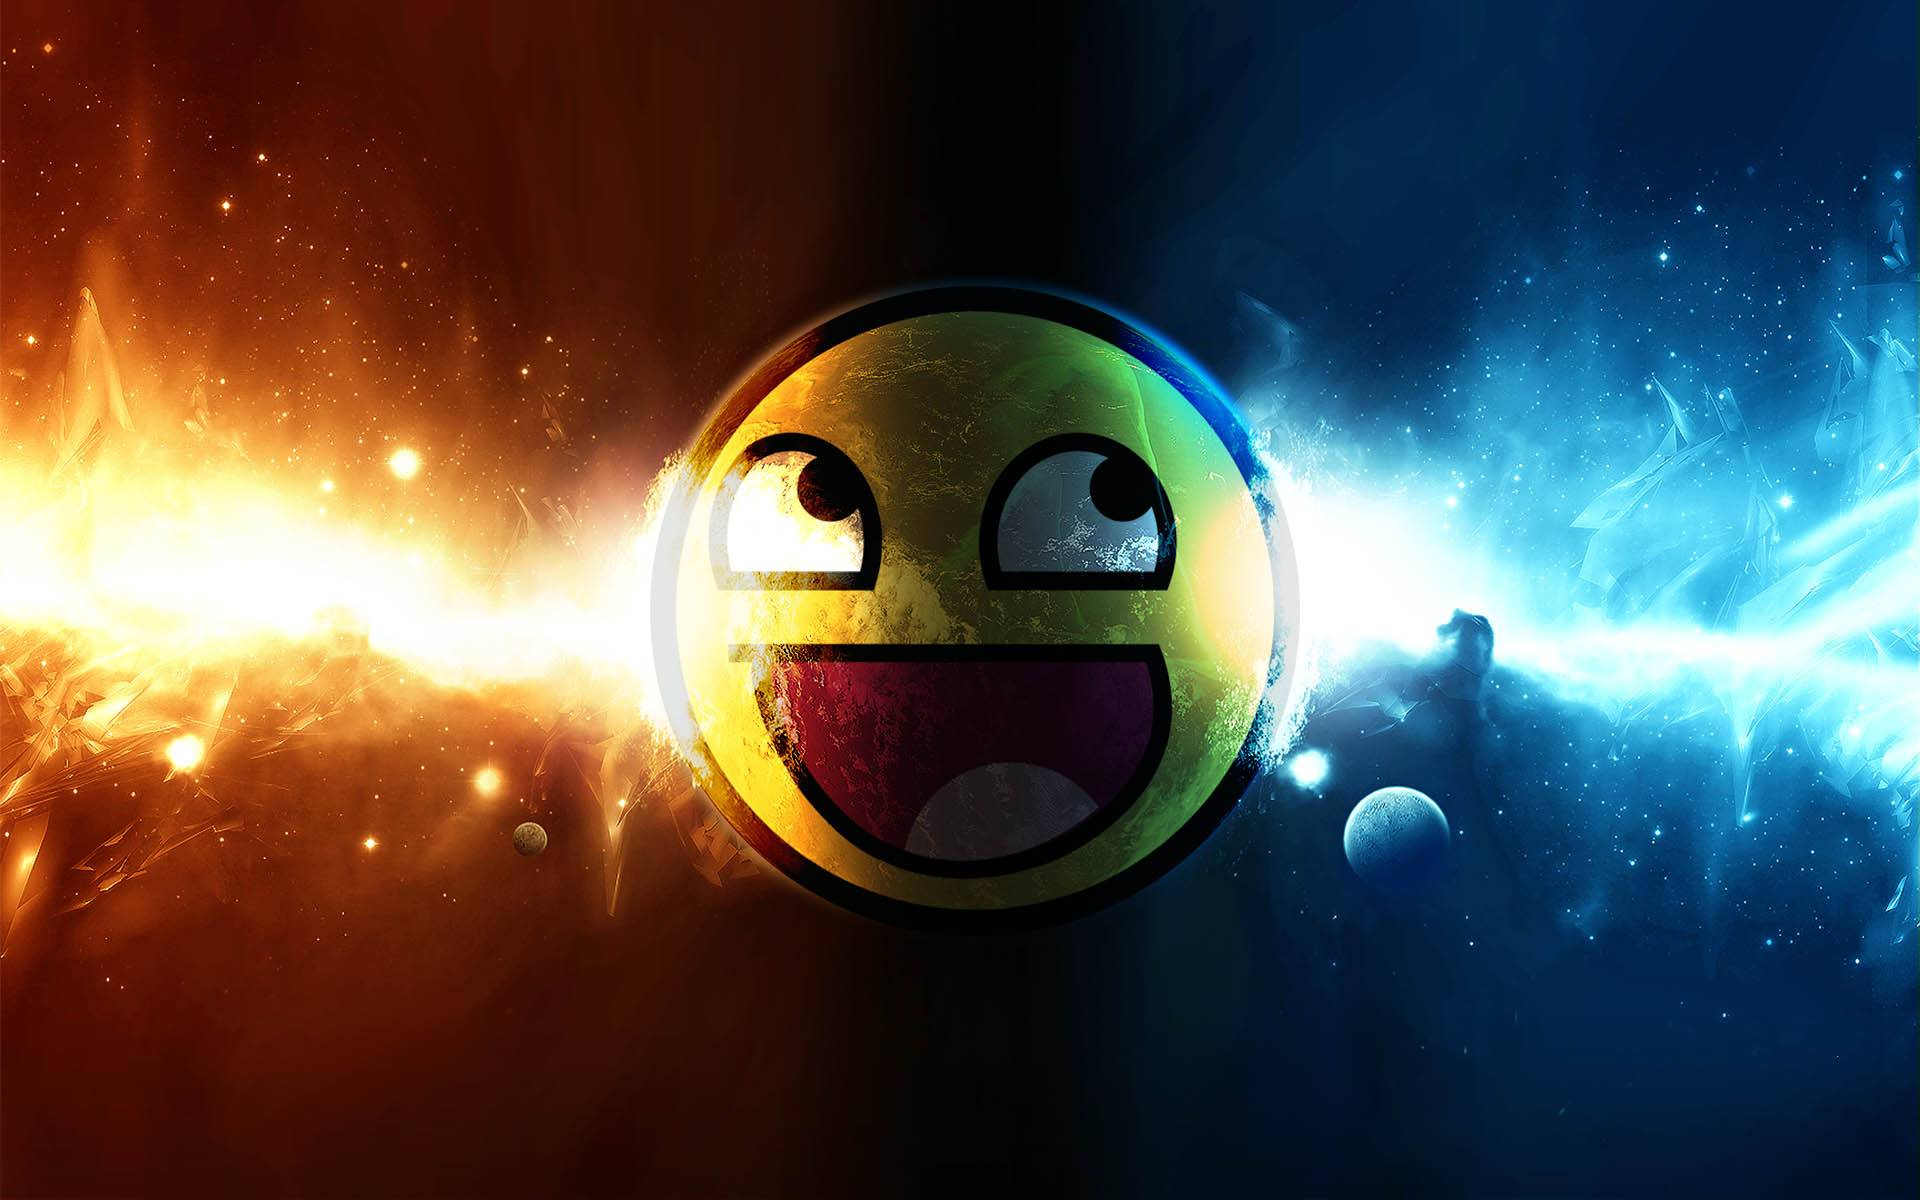 Awesome Cool 3D Smiley Background Wallpapers   Fullsize Wallpaper 1920x1200